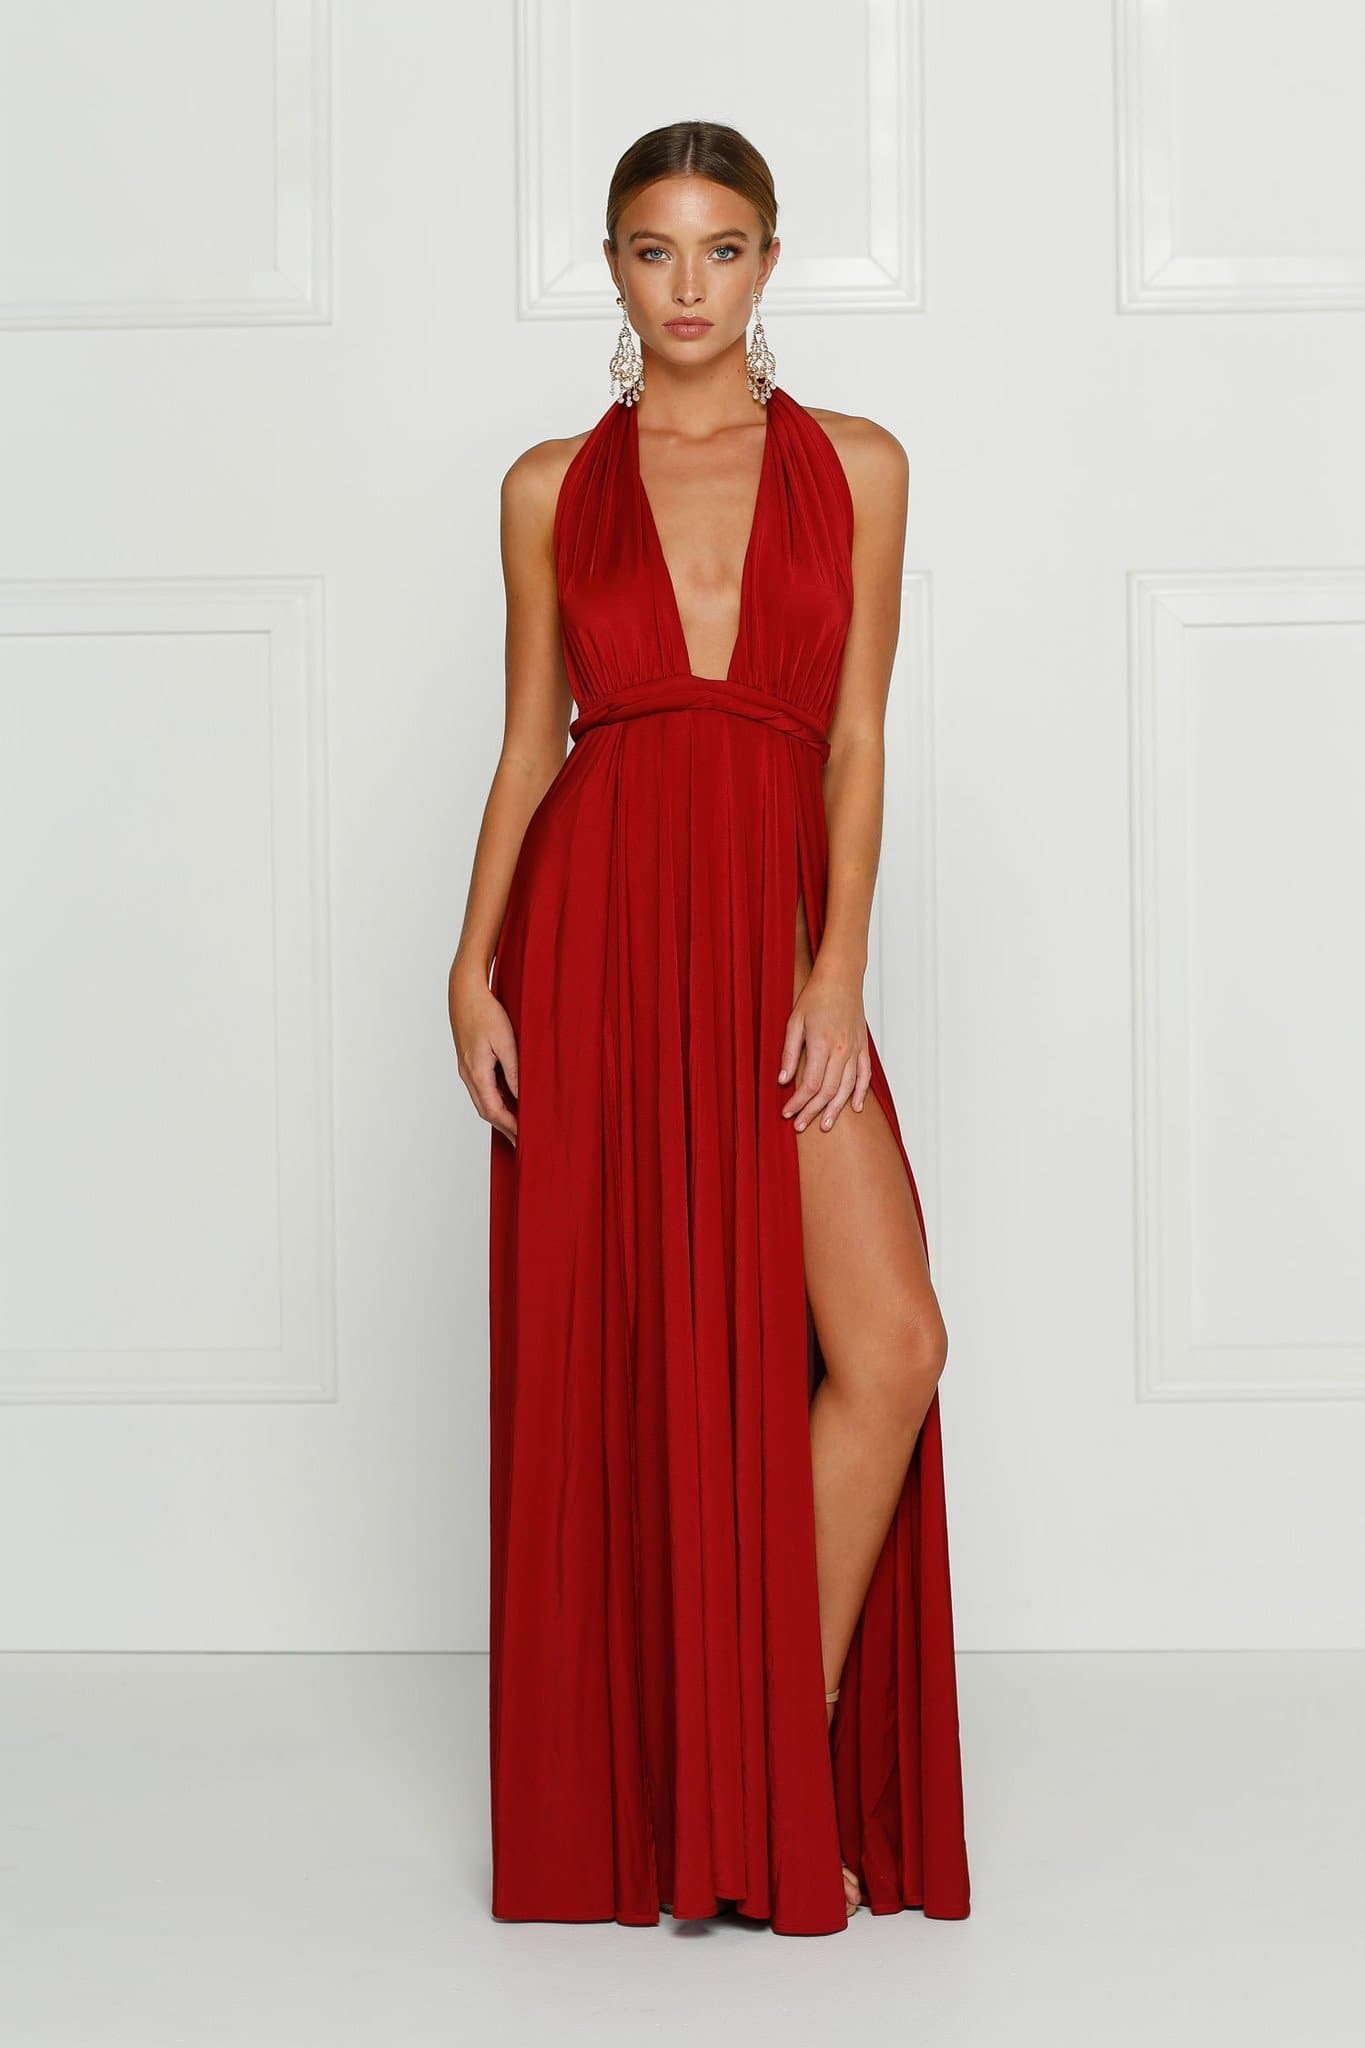 Grecian style wine red maxi made from stretchy jersey with two thigh high splits, adjustable top, low back and full length